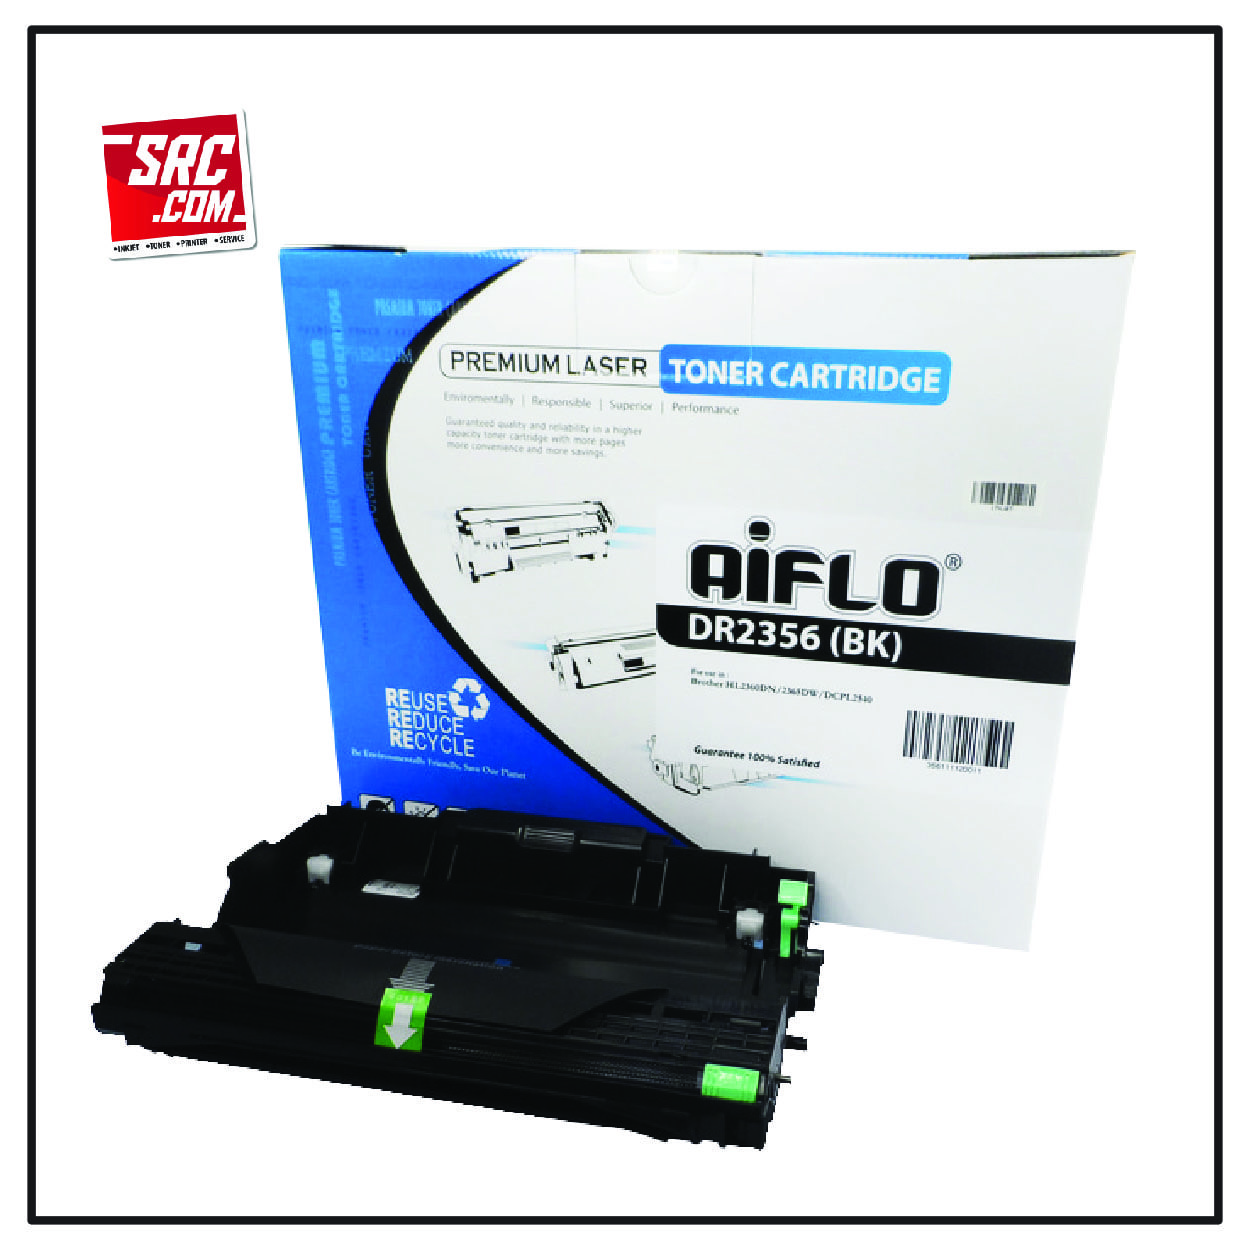 AIFLO DR-2356 Drum Unit Compatible Untuk Printer Laser Brother